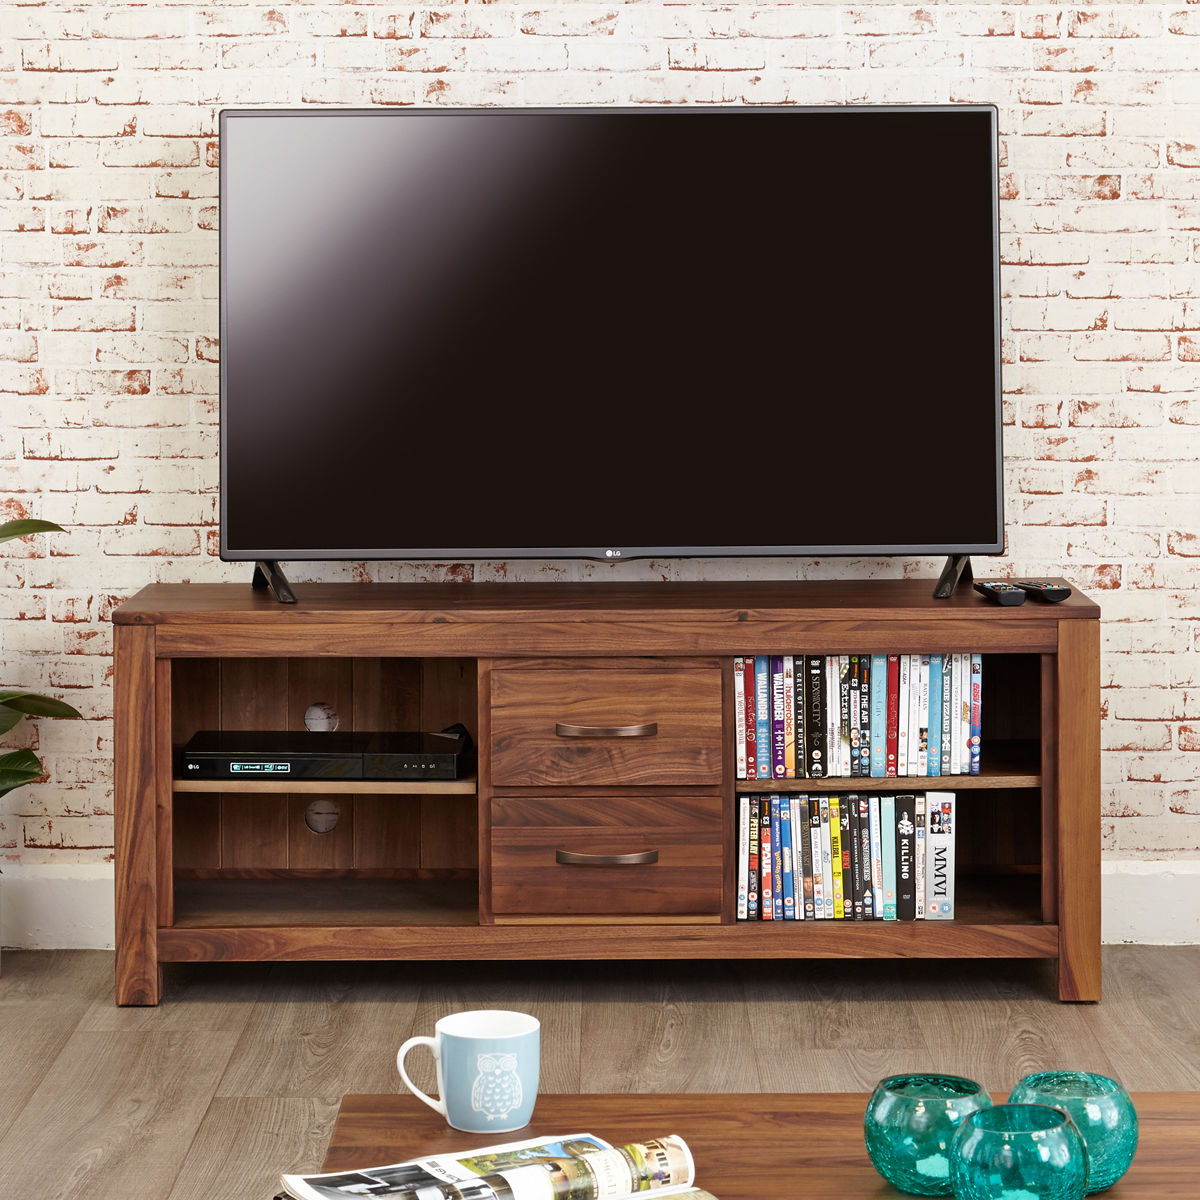 Mayan Walnut Widescreen Television Cabinet Wooden